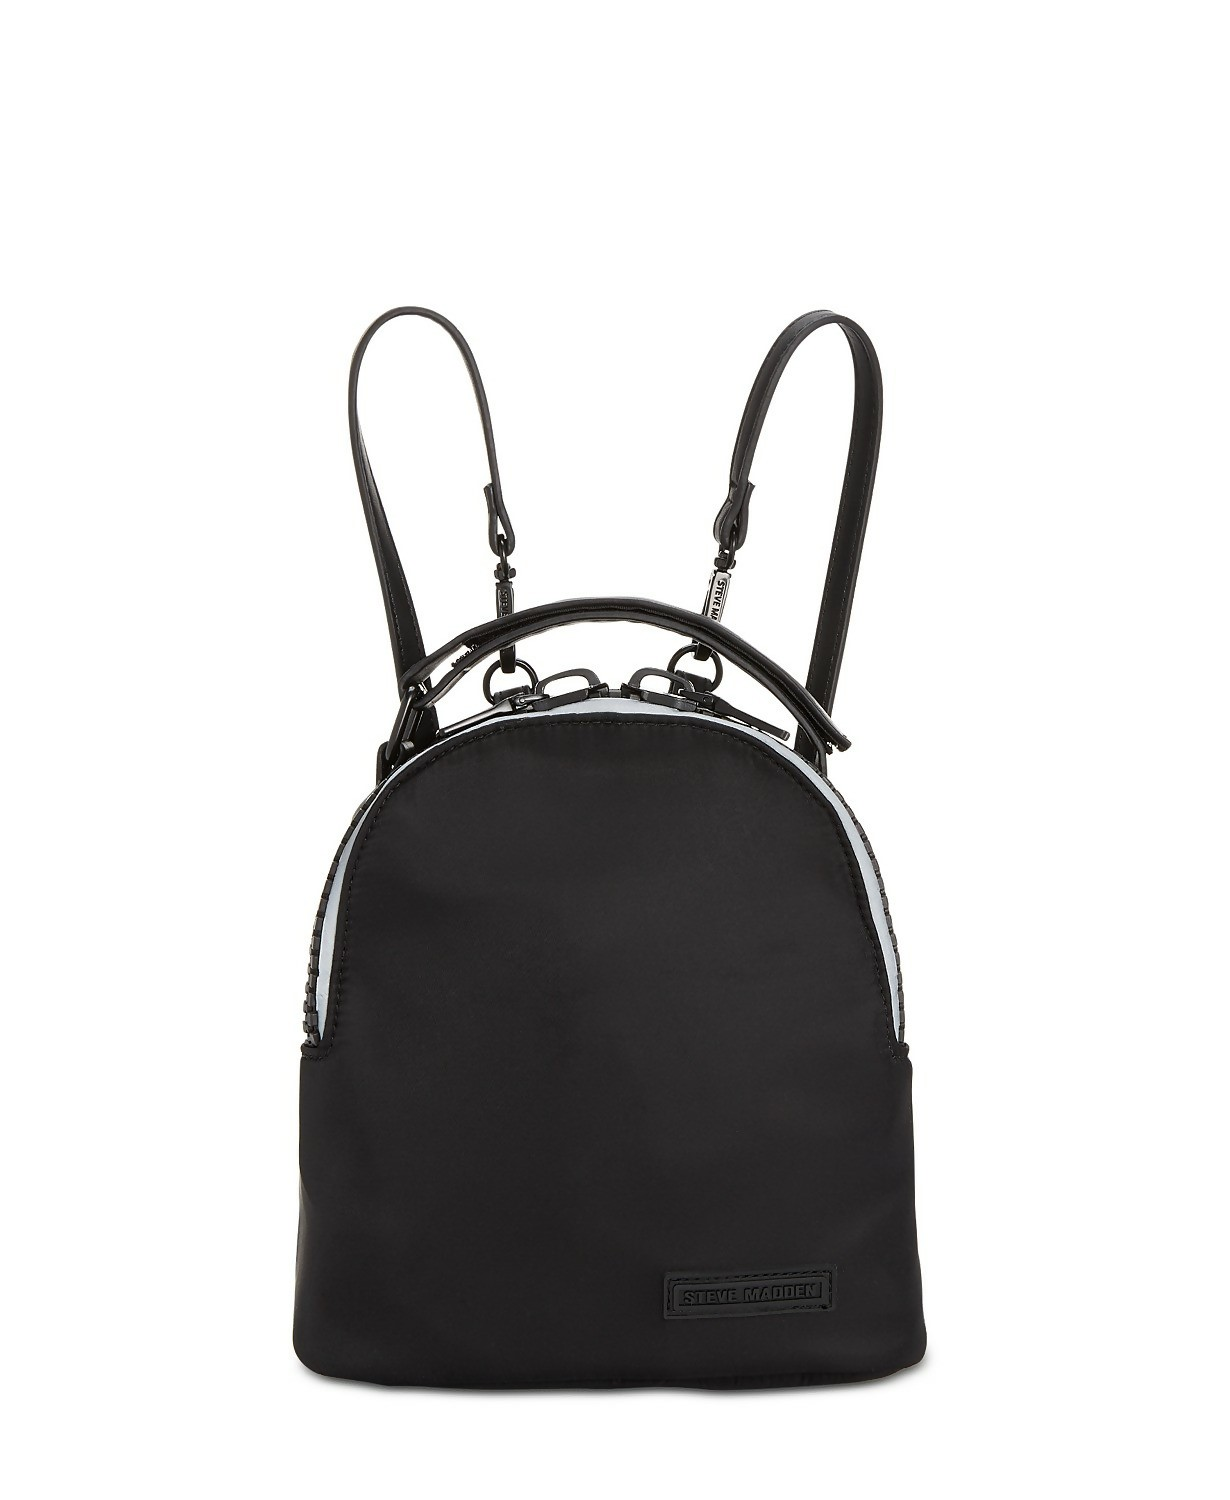 Steve Madden lunch tote backpack